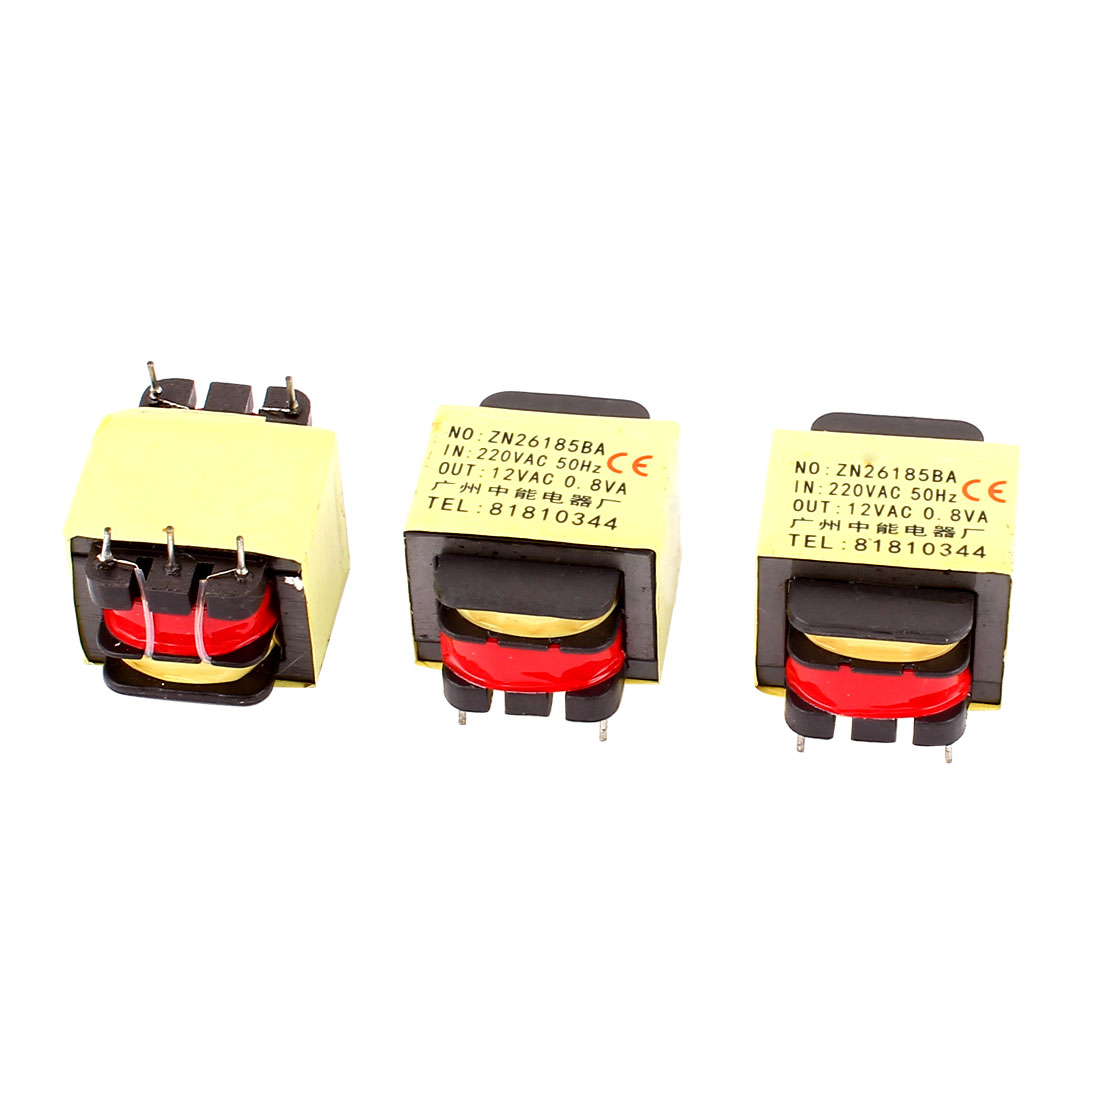 3Pcs 220V Input 12V 0.8VA Output Yellow Red Ferrite Core Power Transformer w 5 Terminals